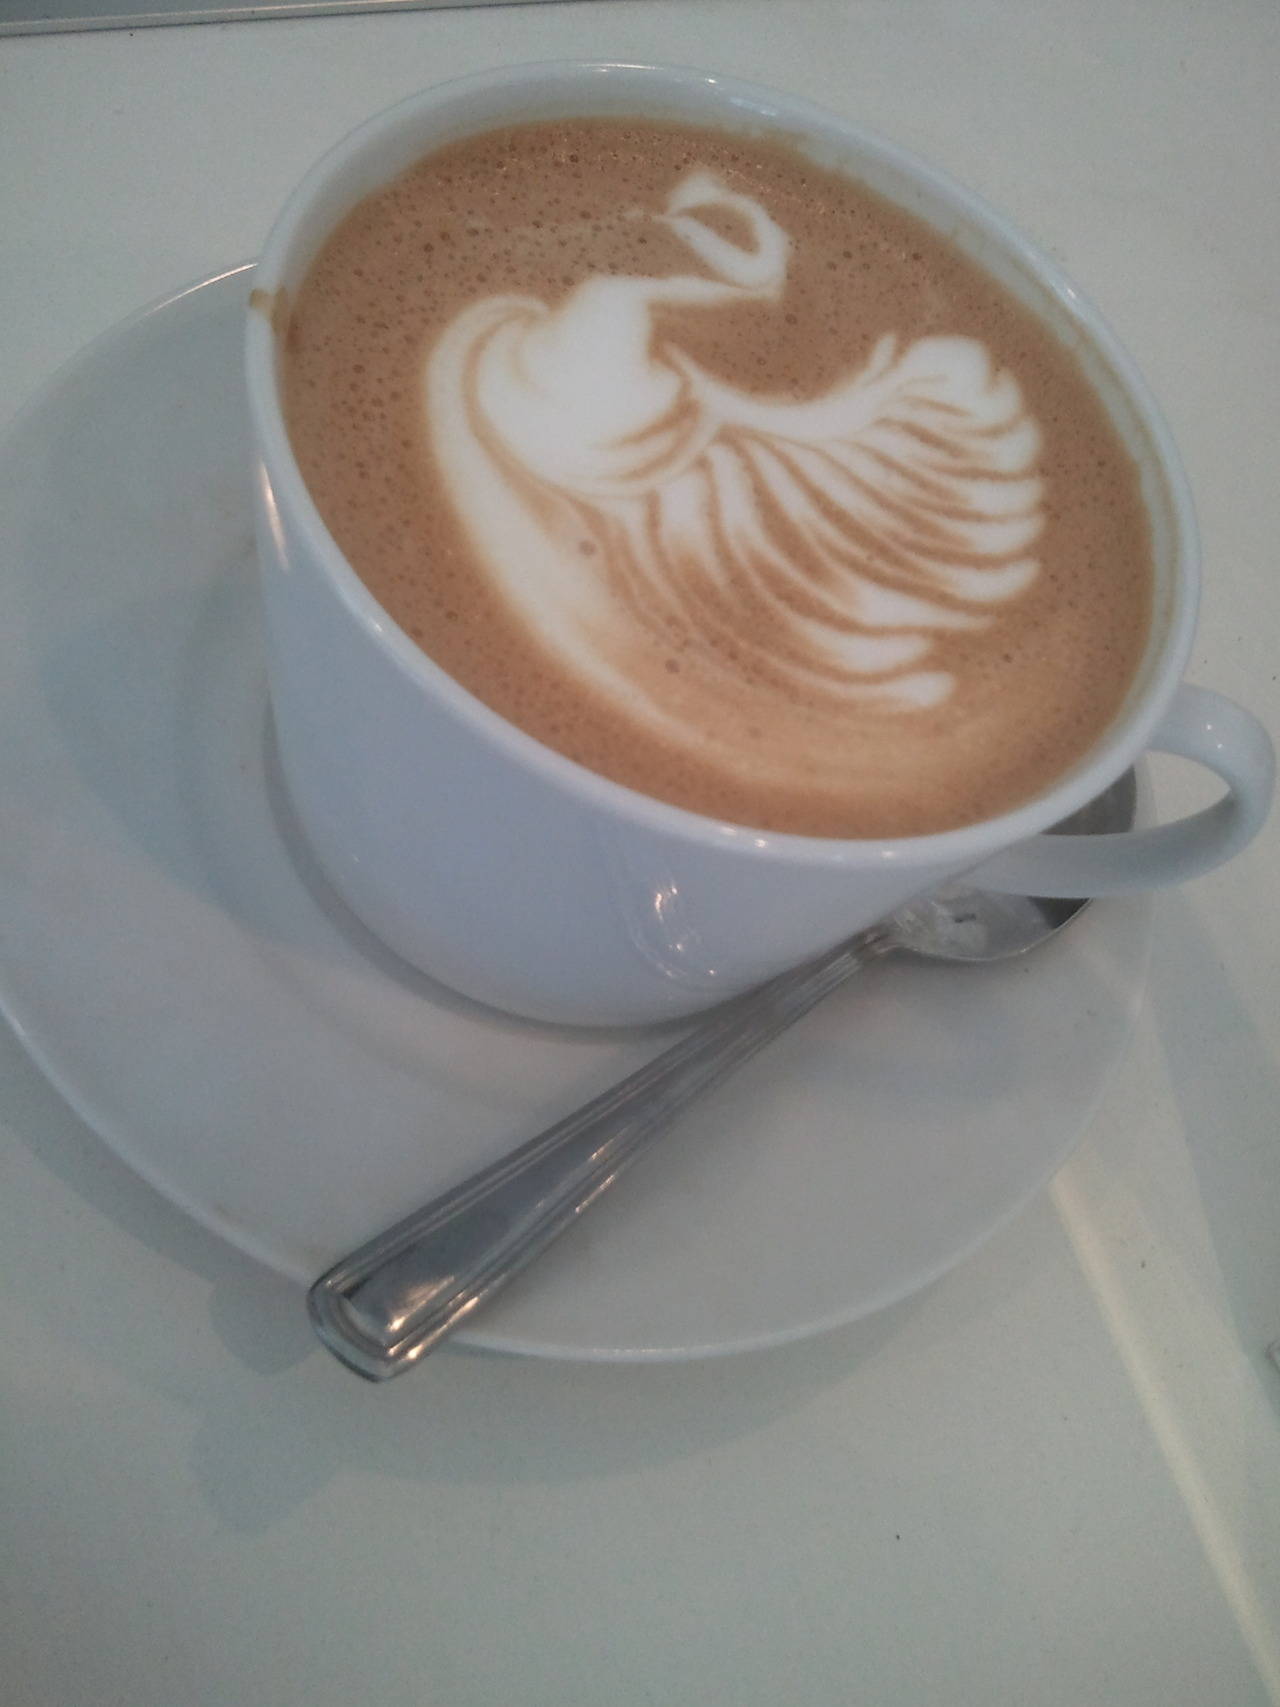 Just in time for American Thanksgiving.   Latte at Farenheit coffee